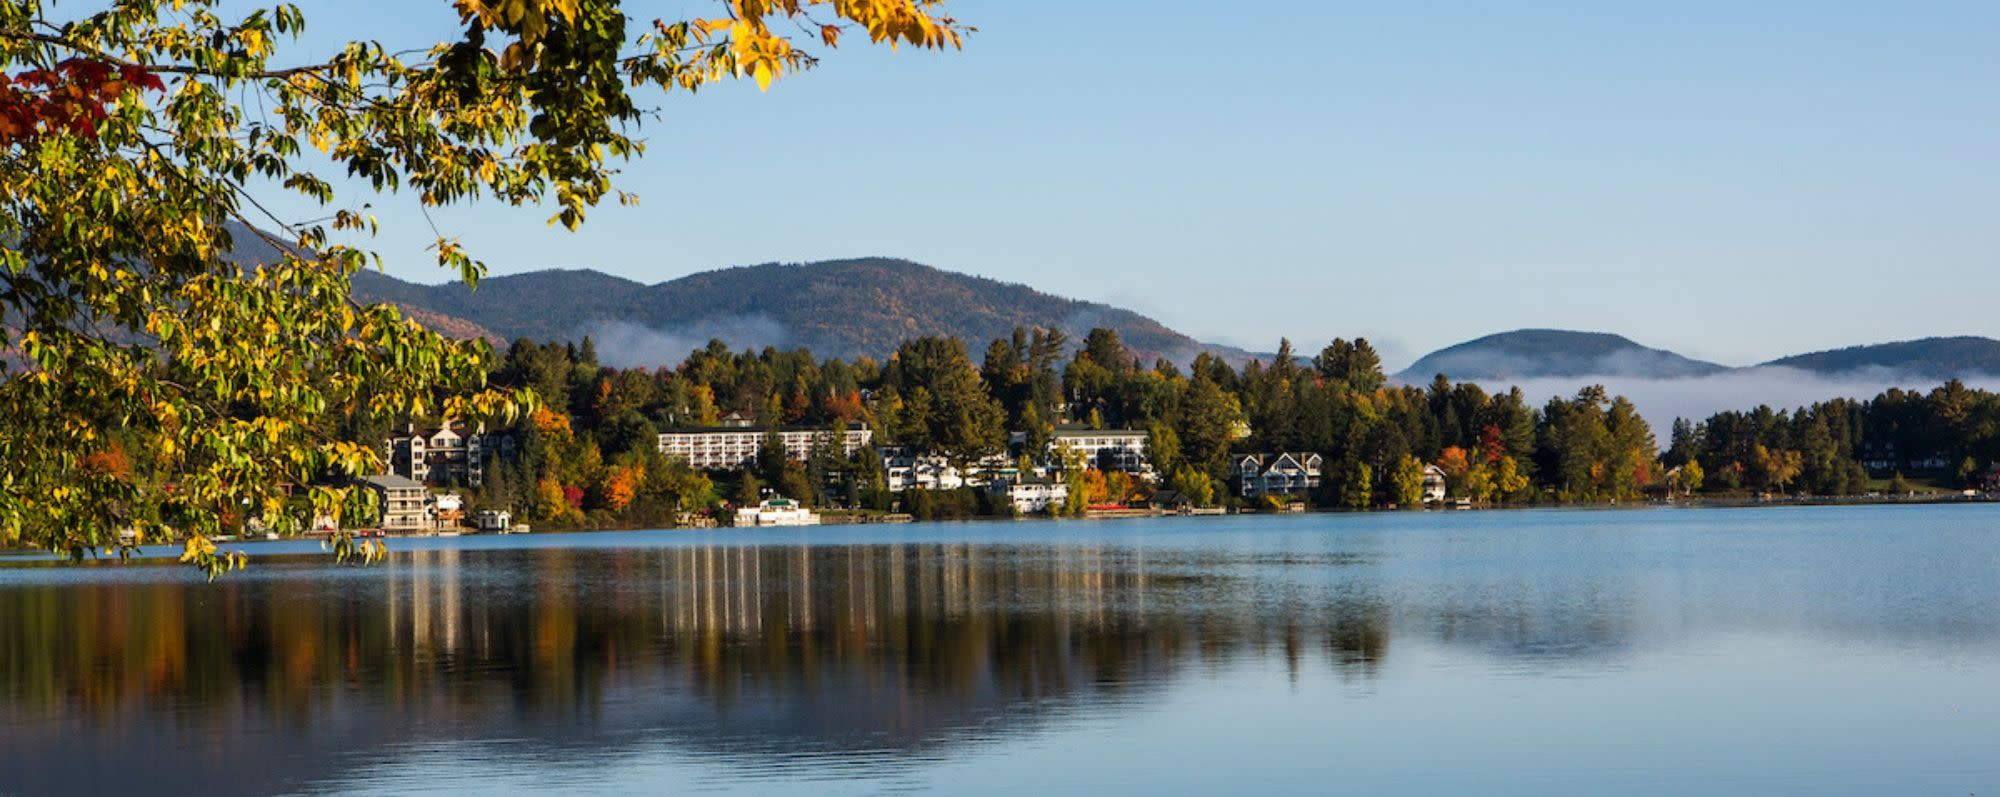 Autumn leaves beginning to show on the shores of Lake Placid, NY.